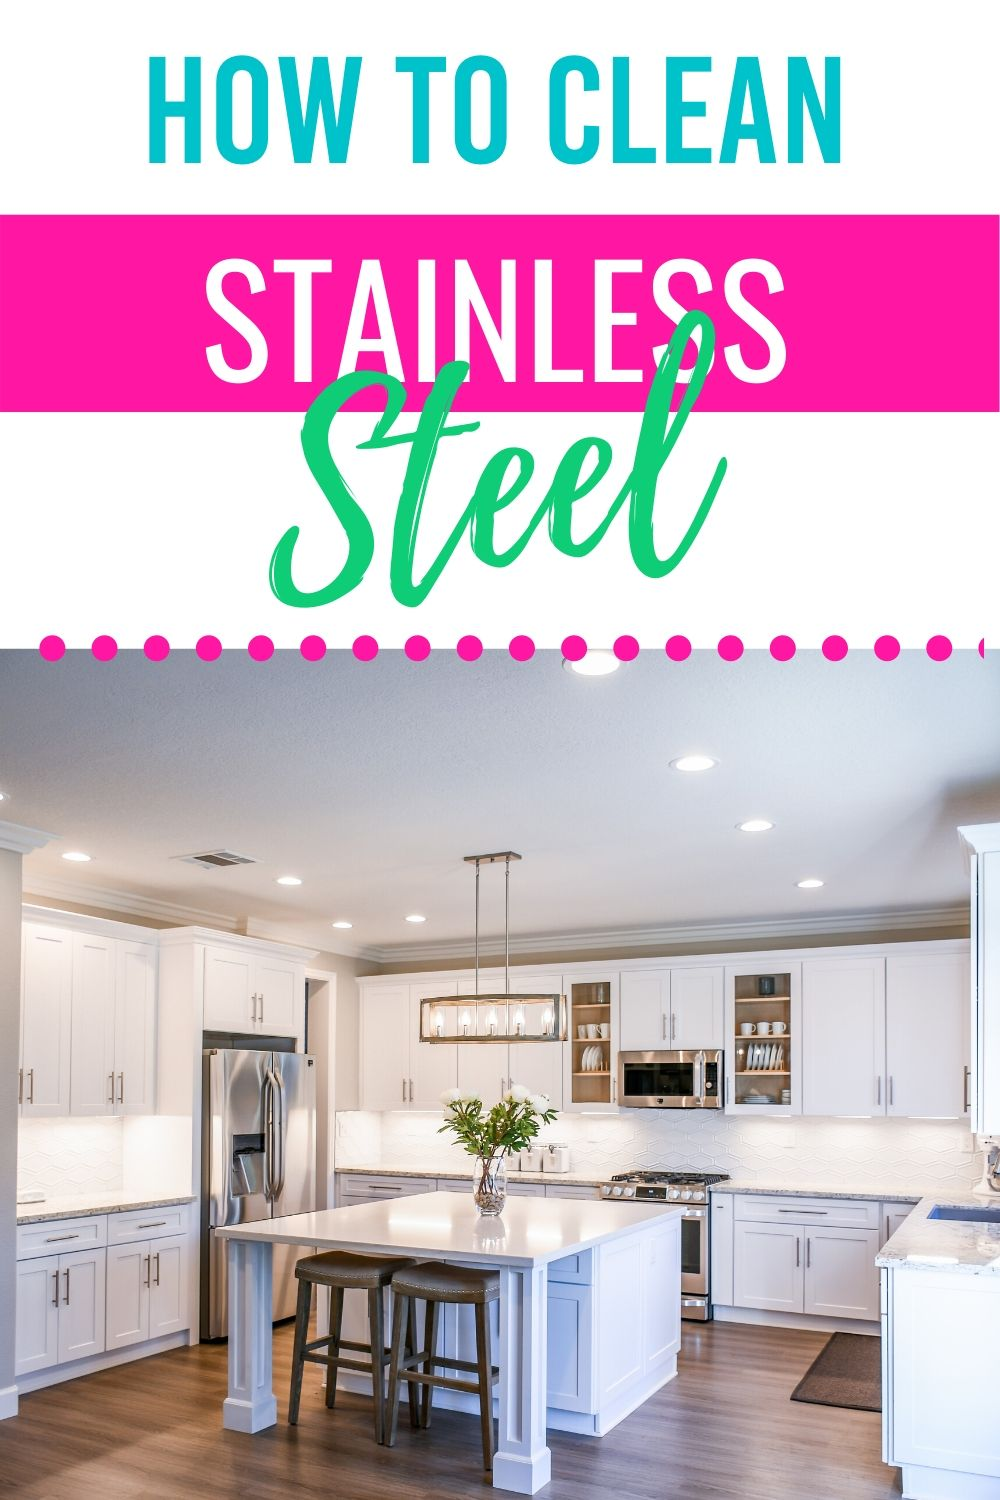 Appliances are expensive.  It's important to keep them in tip-top condition.  Learn how to clean stainless steel to make your appliances look good as new. #howtocleanstainlesssteel #howdoyoucleanyourstainlessappliances #stainlesssteel via @homebyjenn